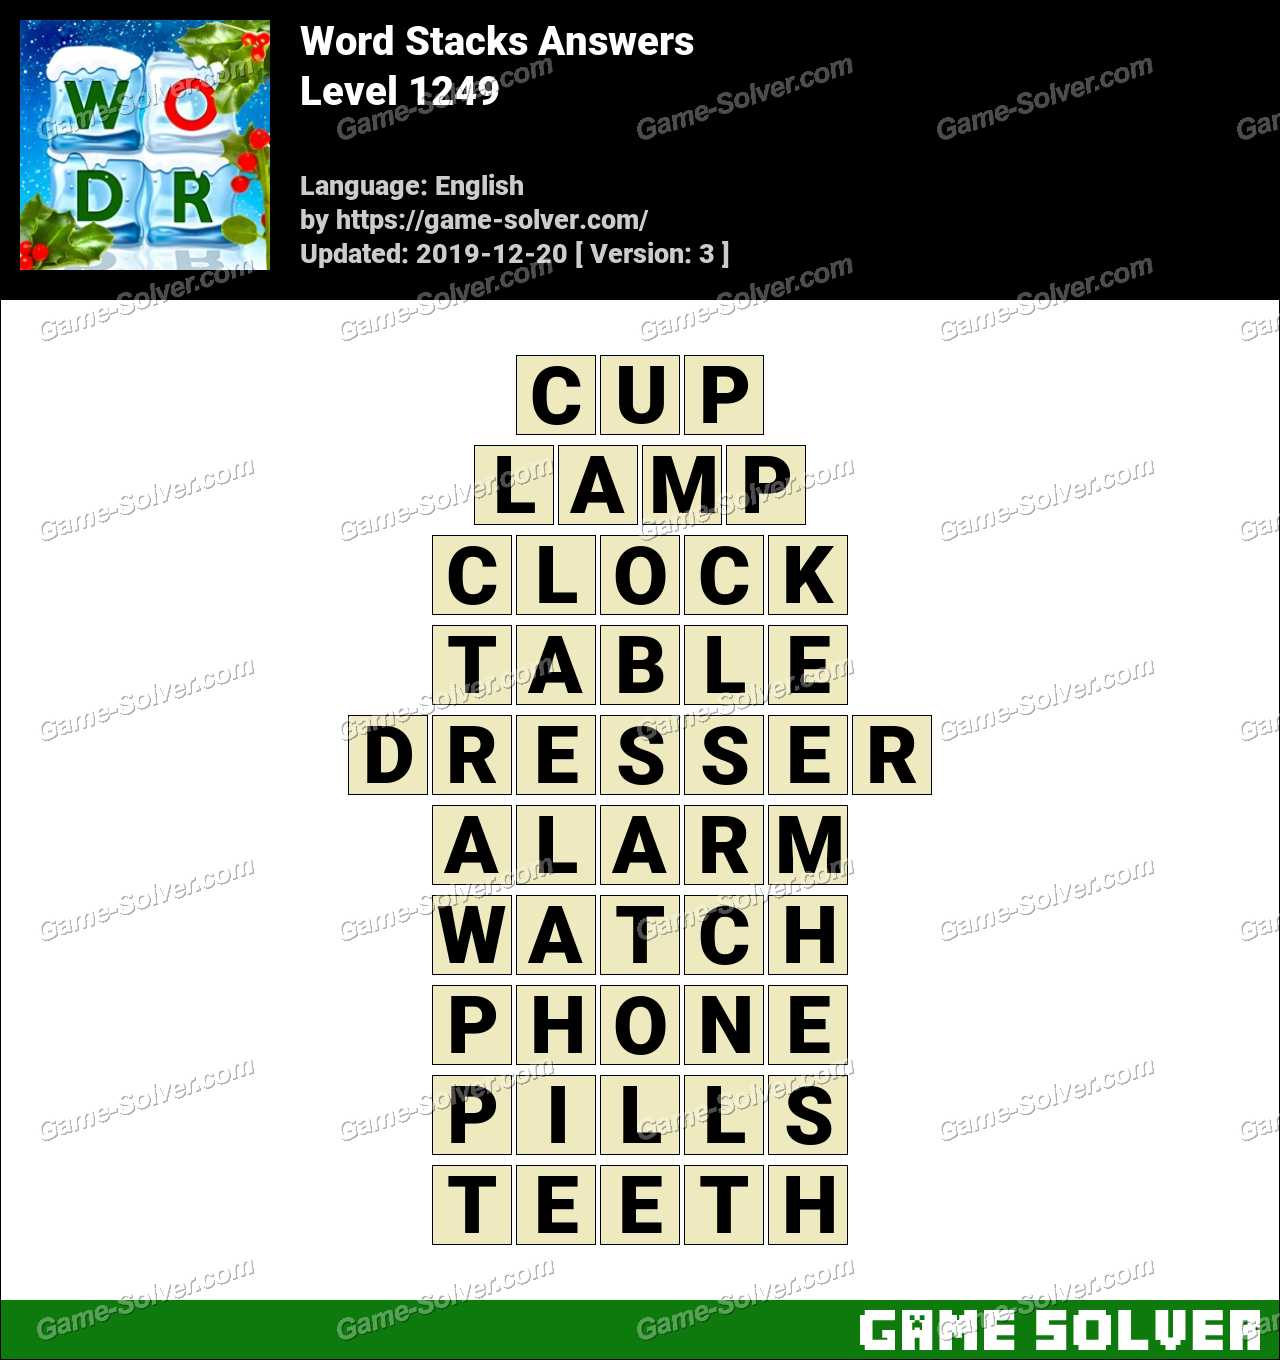 Word Stacks Level 1249 Answers